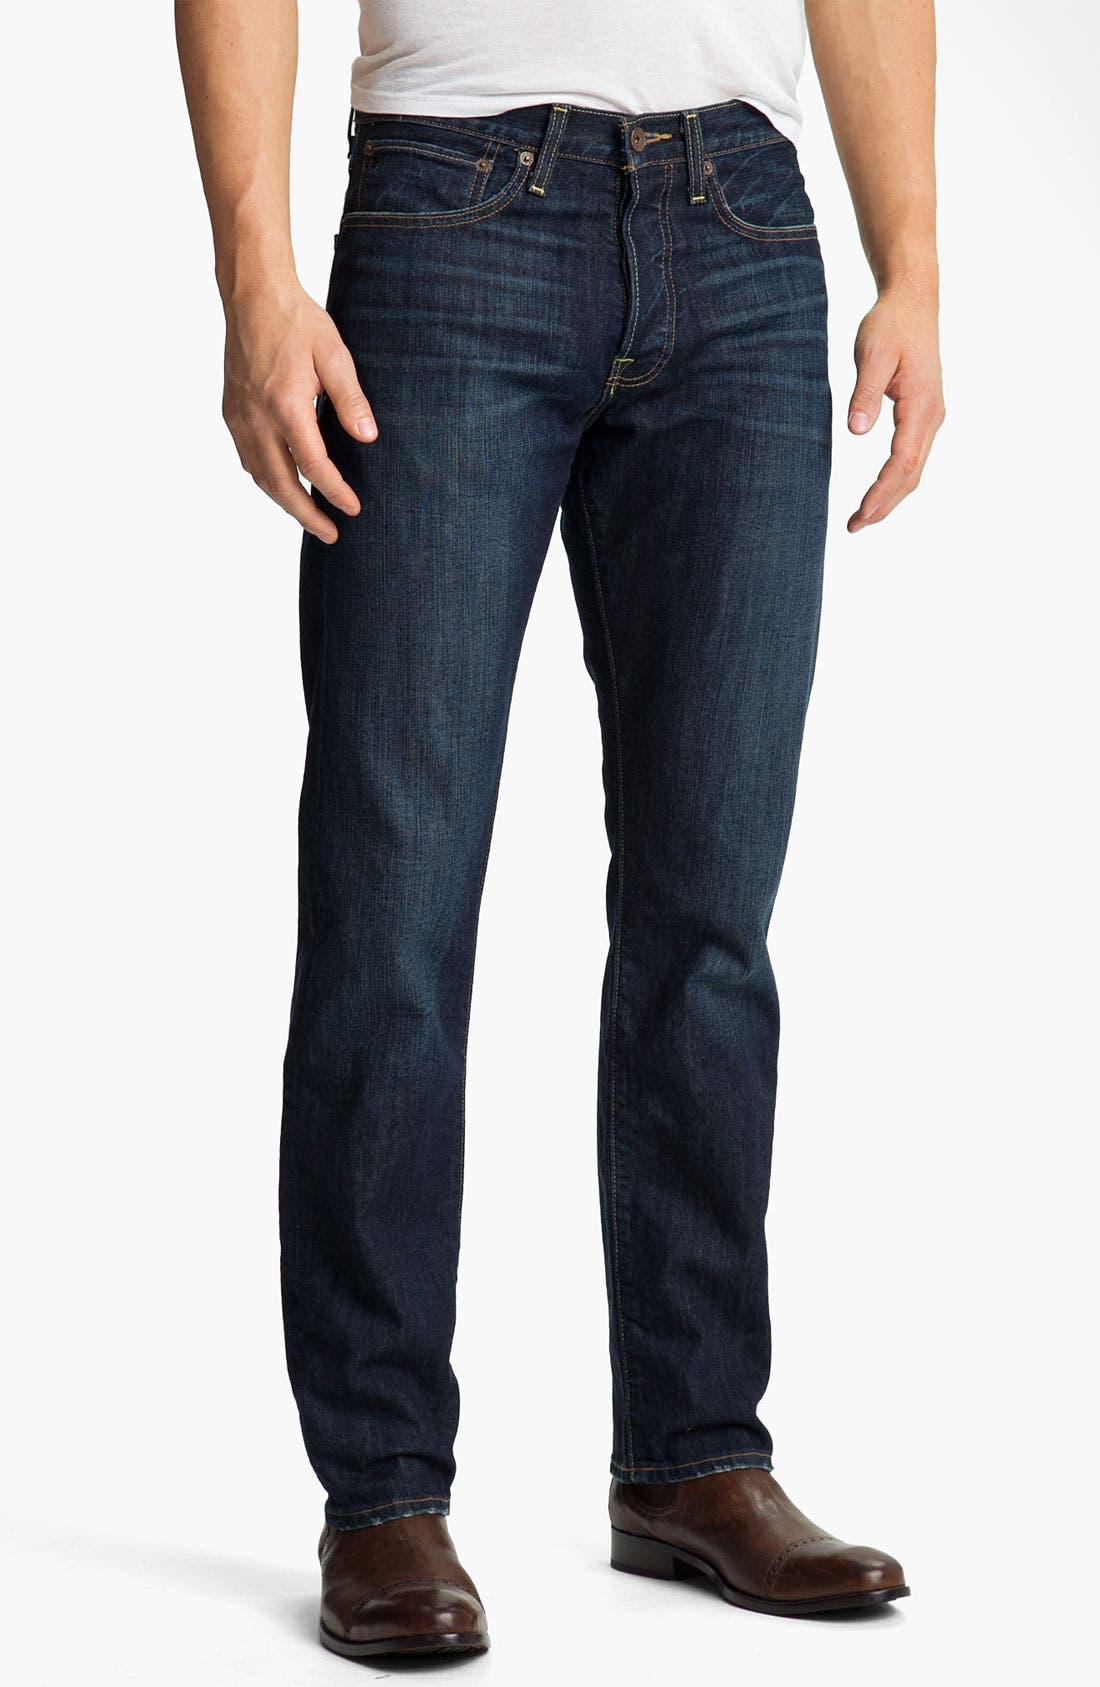 '123 Heritage' Slim Straight Leg Jeans,                             Main thumbnail 1, color,                             460